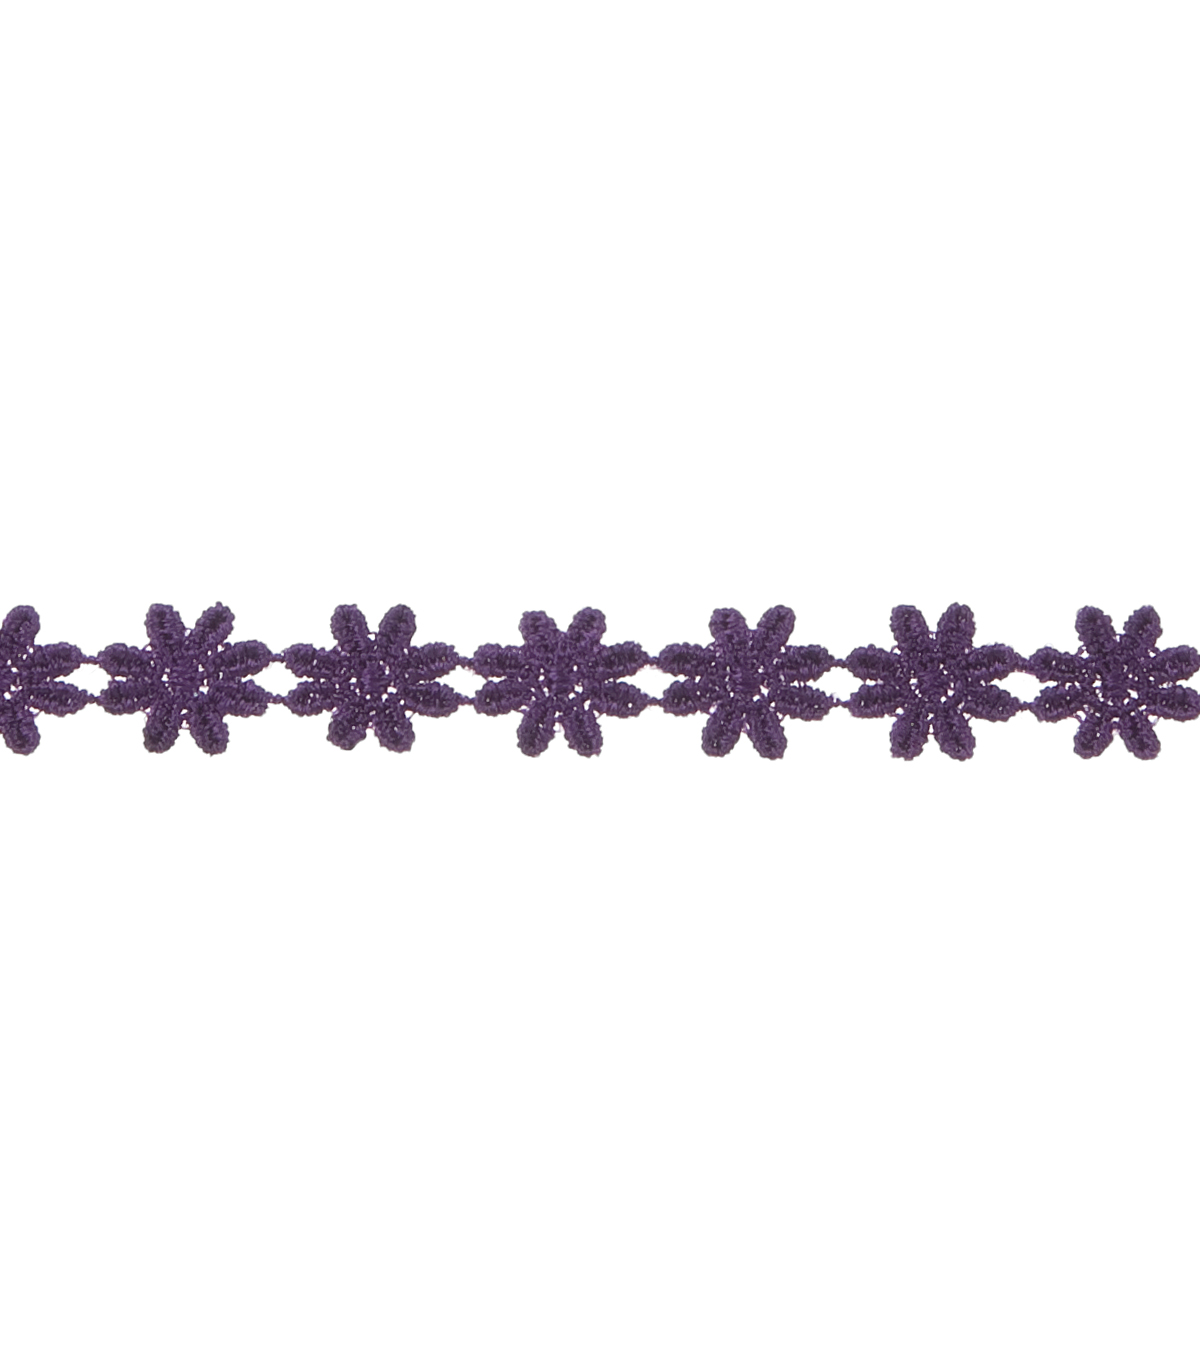 Daisy Chain Purple 2 Yds Apparel Trim